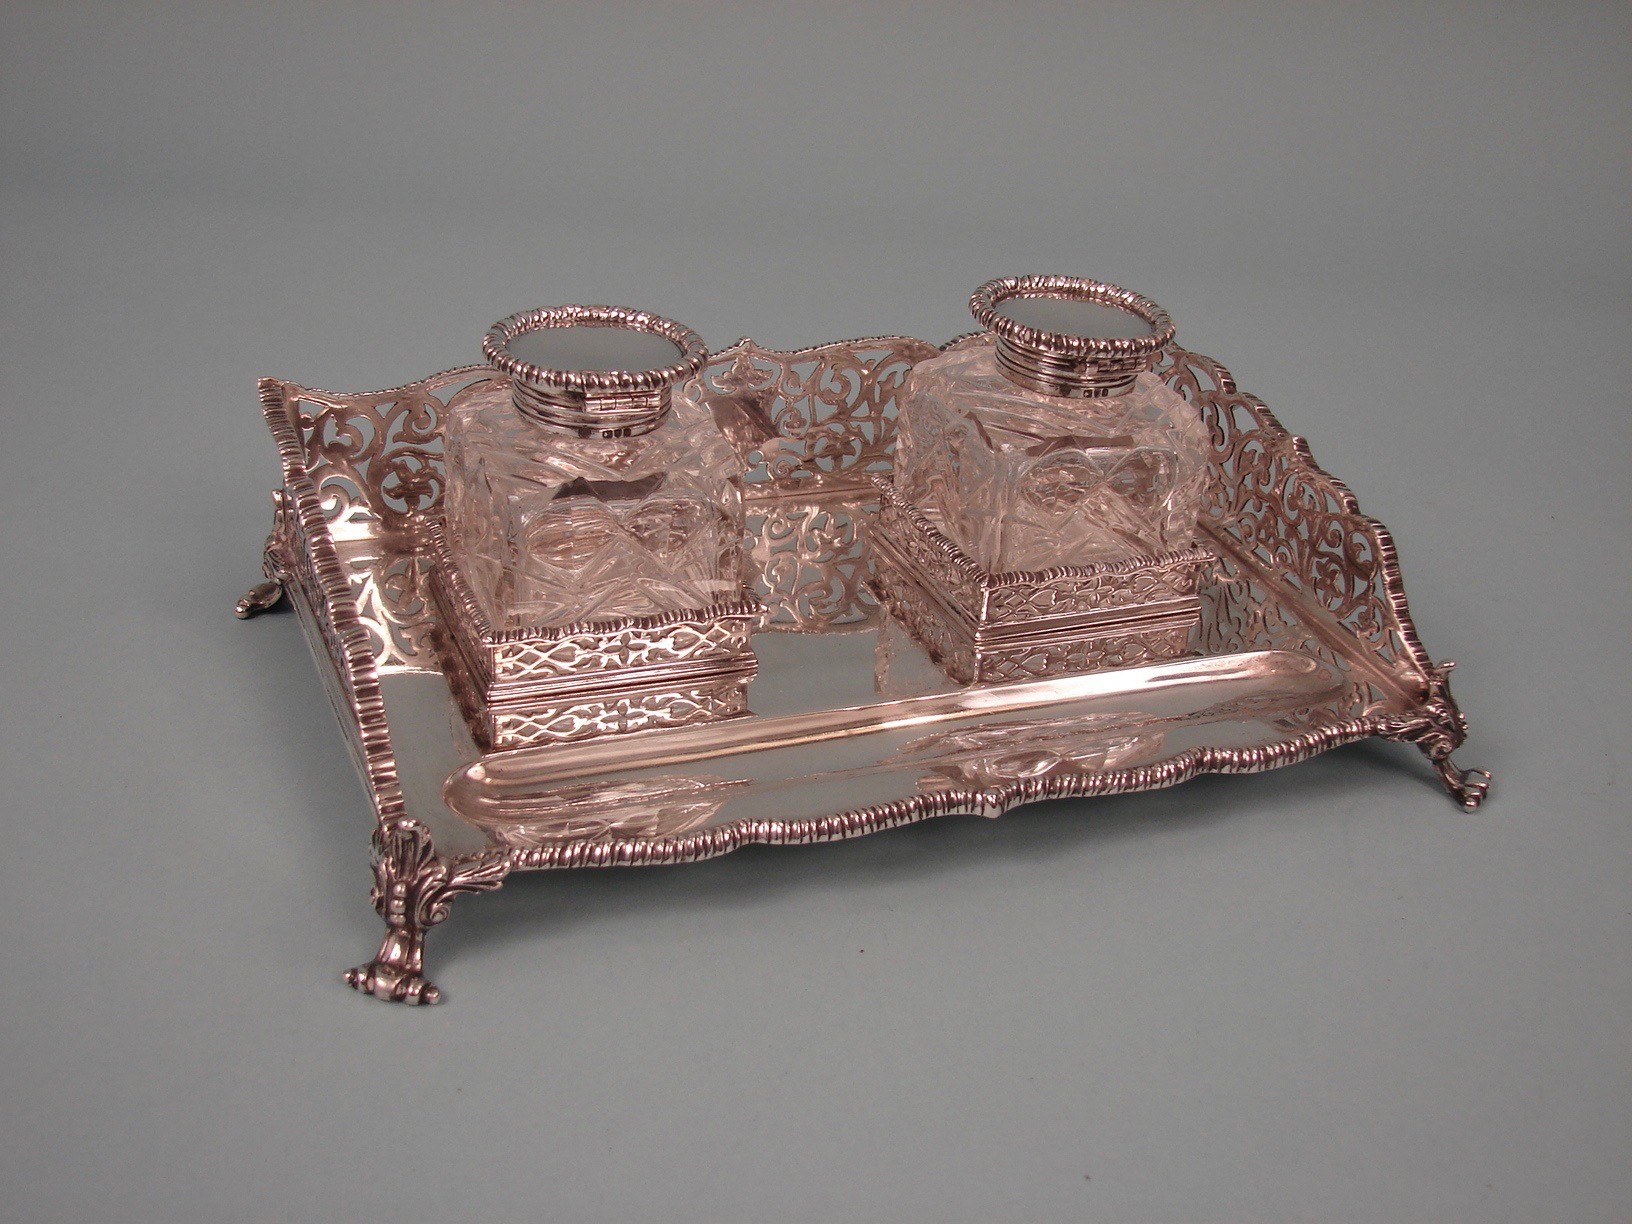 English Sterling Silver Standish with 2 Cut Glass Inkwells | DANIEL STEIN Antiques San Francisco CA